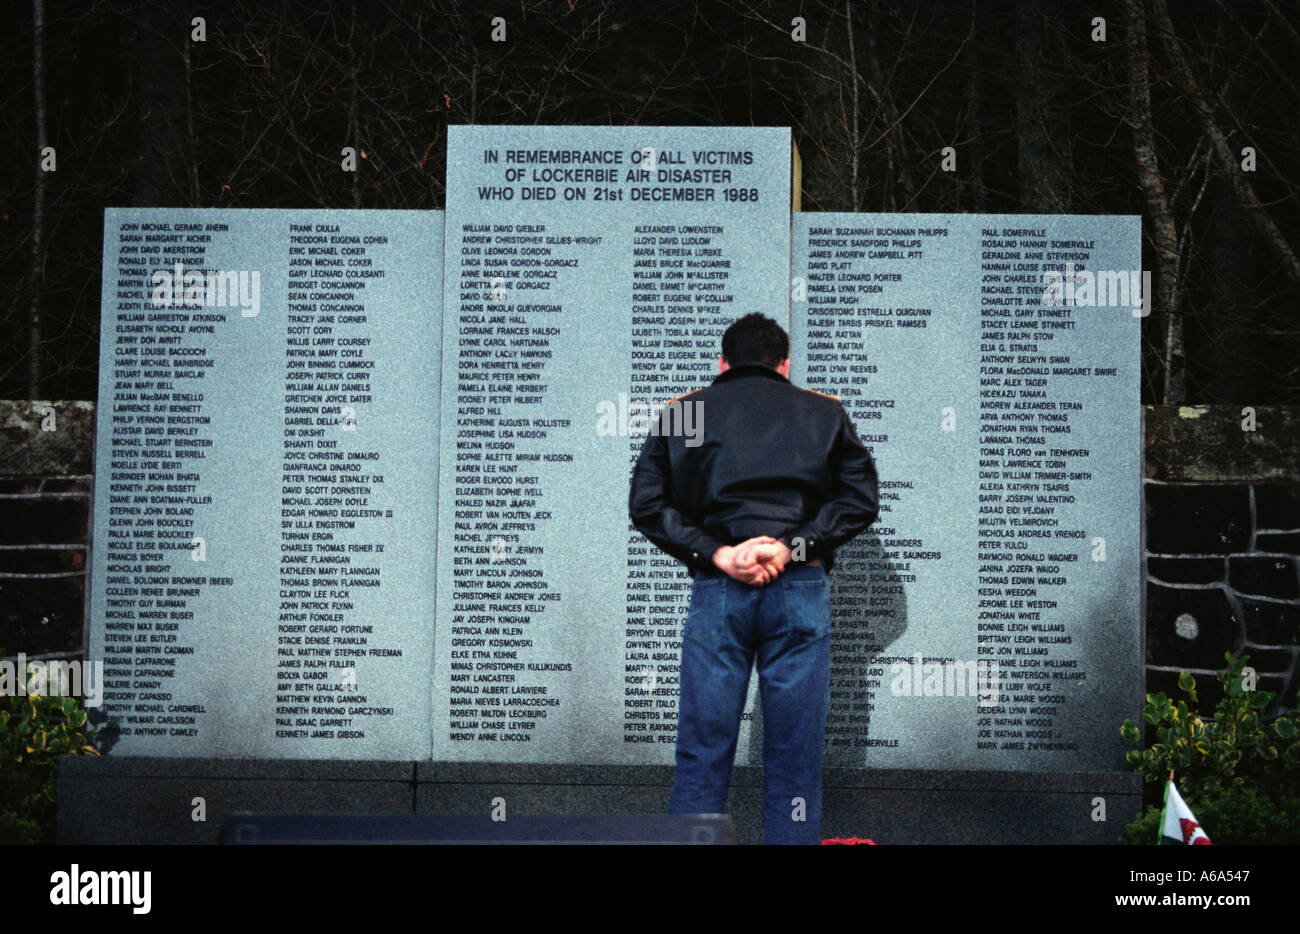 Lockerbie Memorial to PanAm 103 - Stock Image